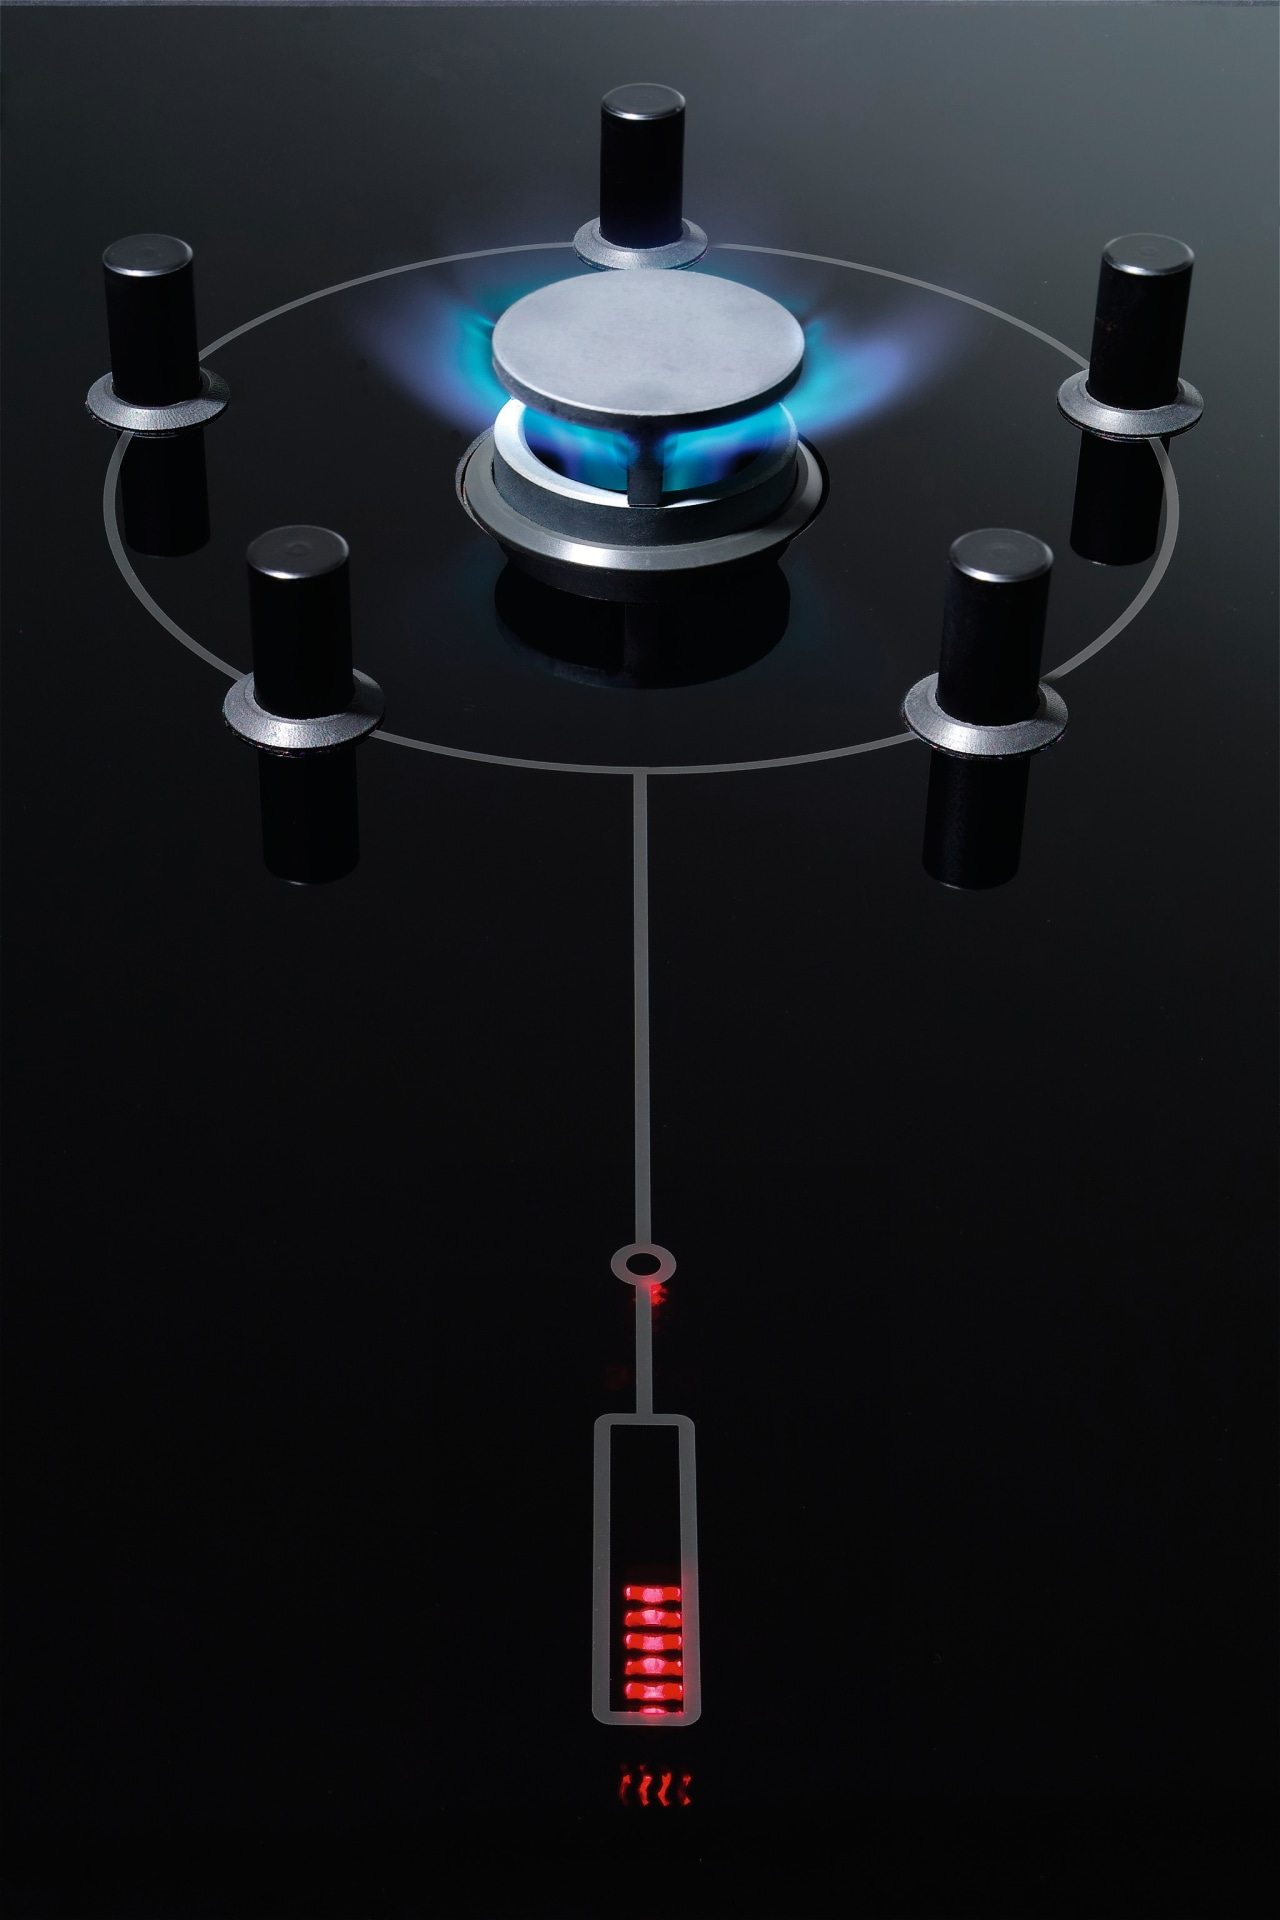 The glow iginition technology provides instantaneous gas ignition product, product design, technology, black